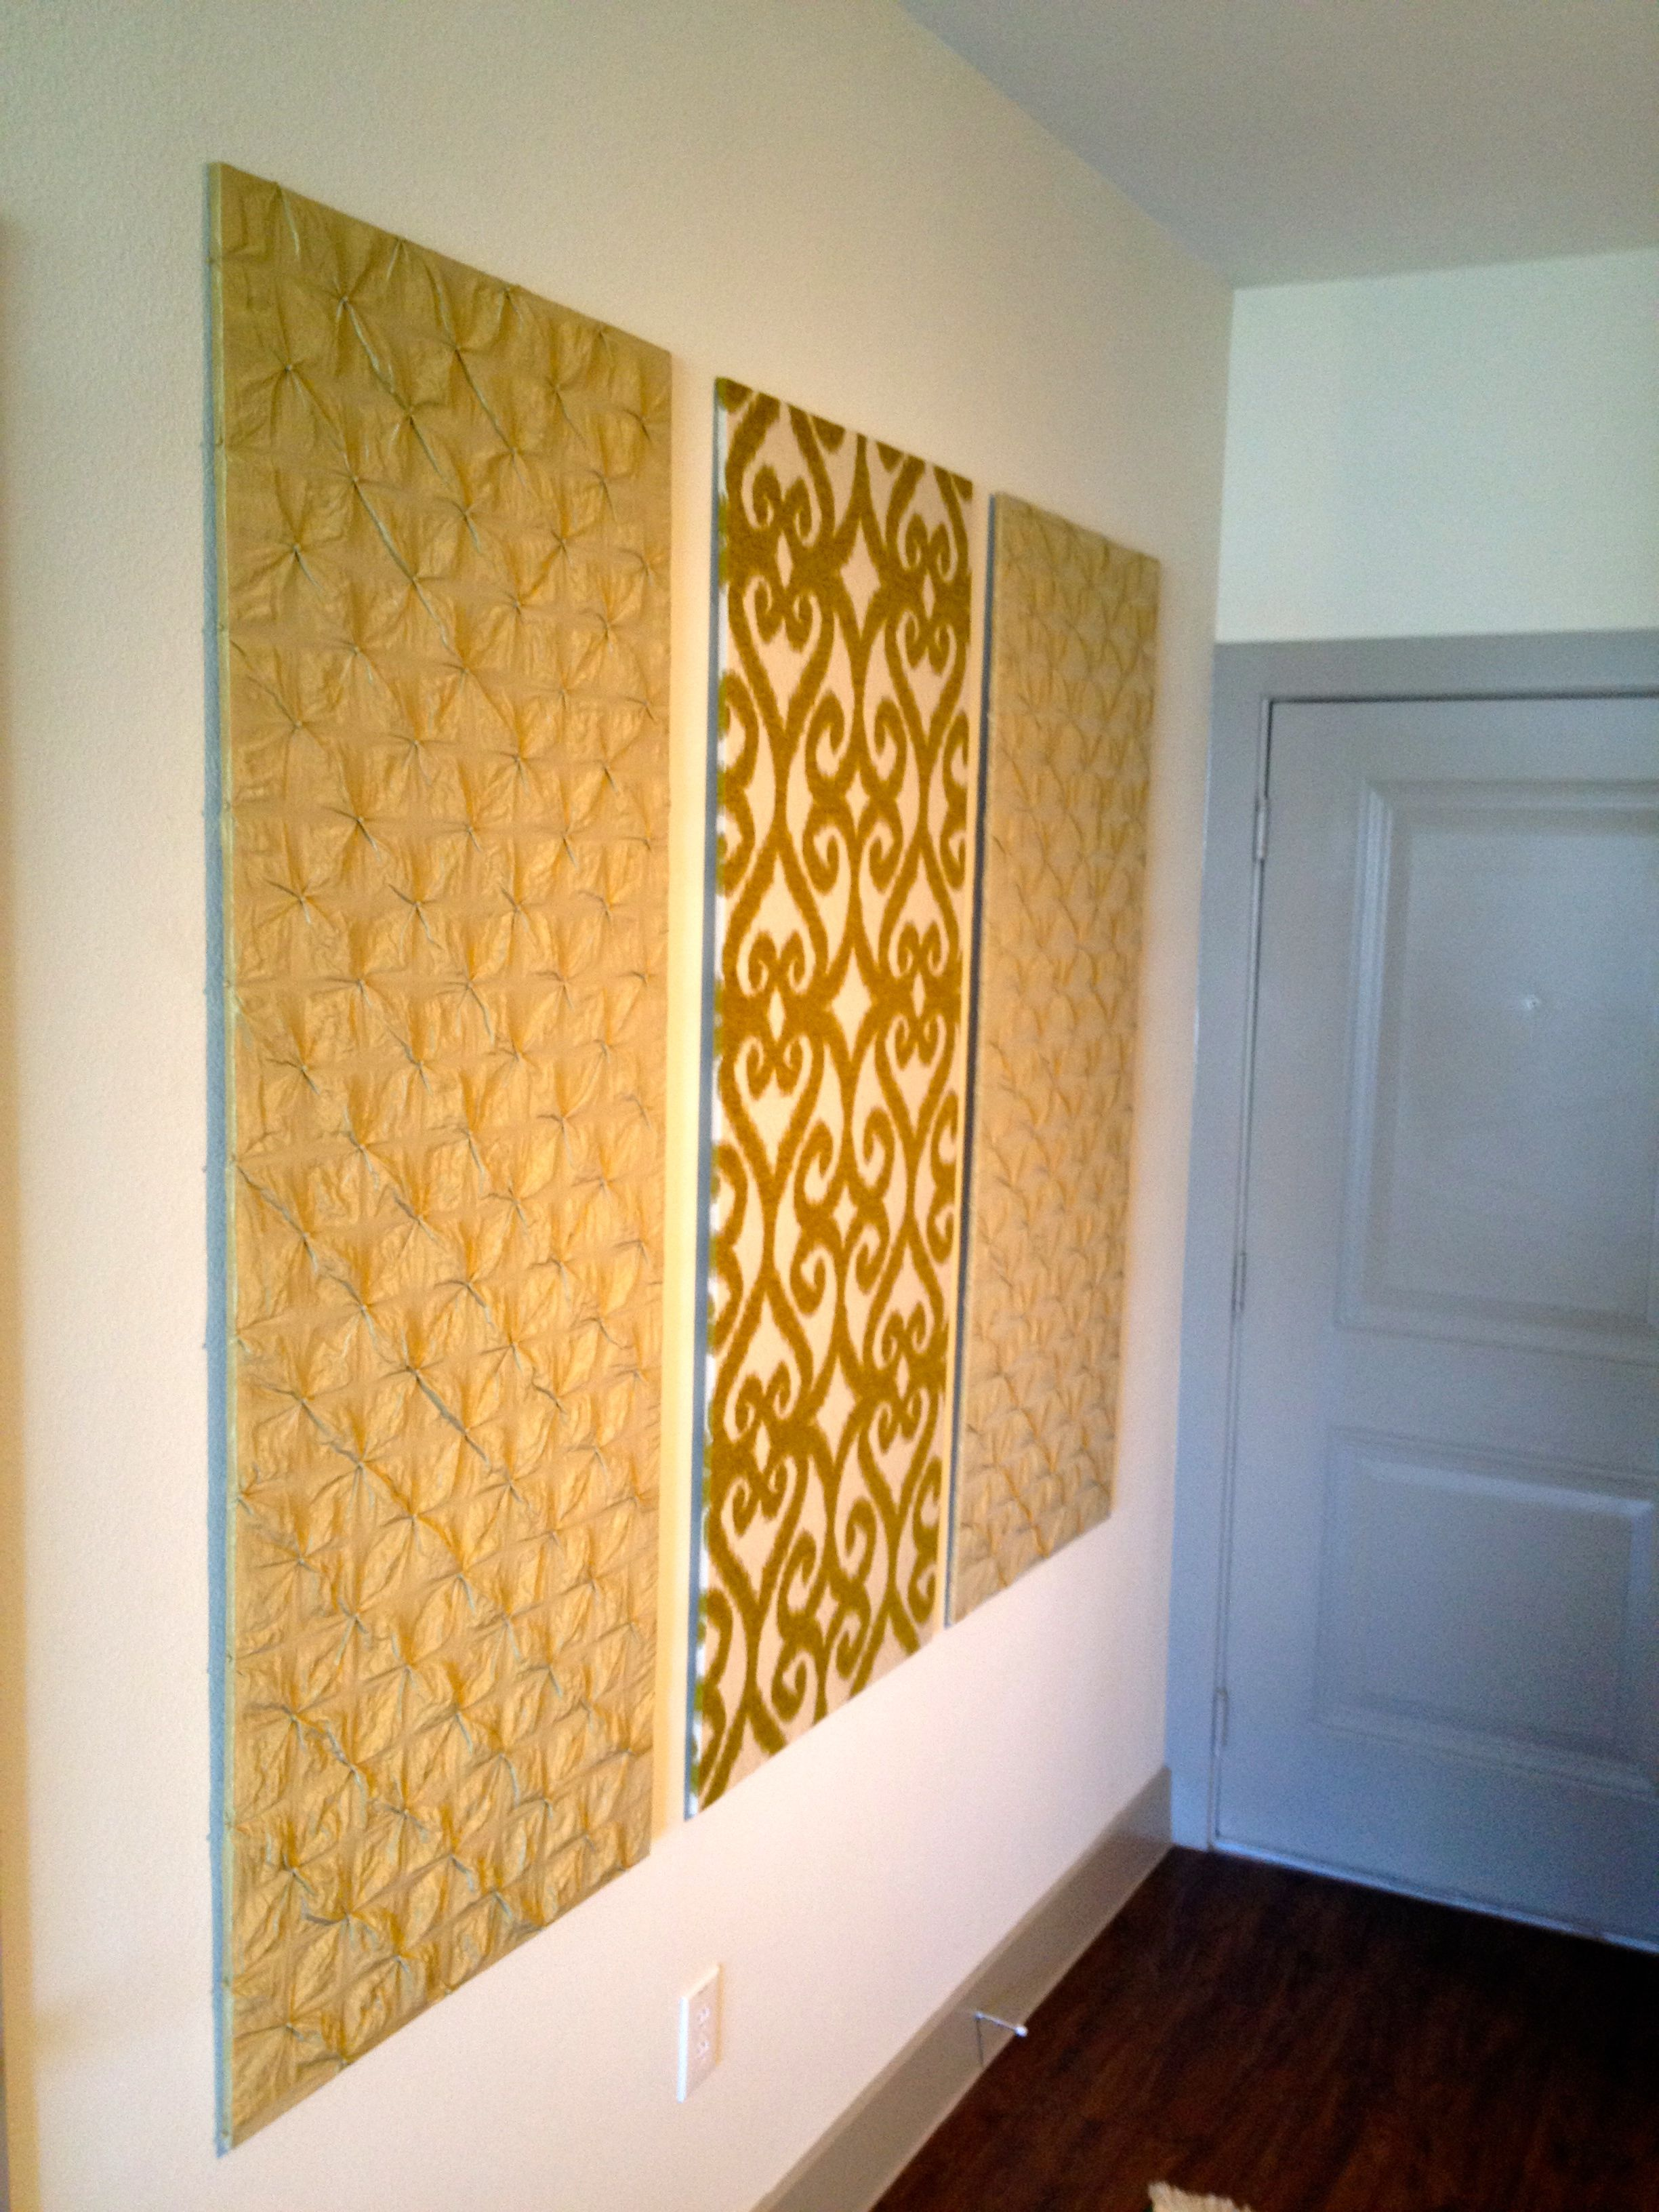 DIY upholstered wall panels for an entry hallway | Home Ideas ...